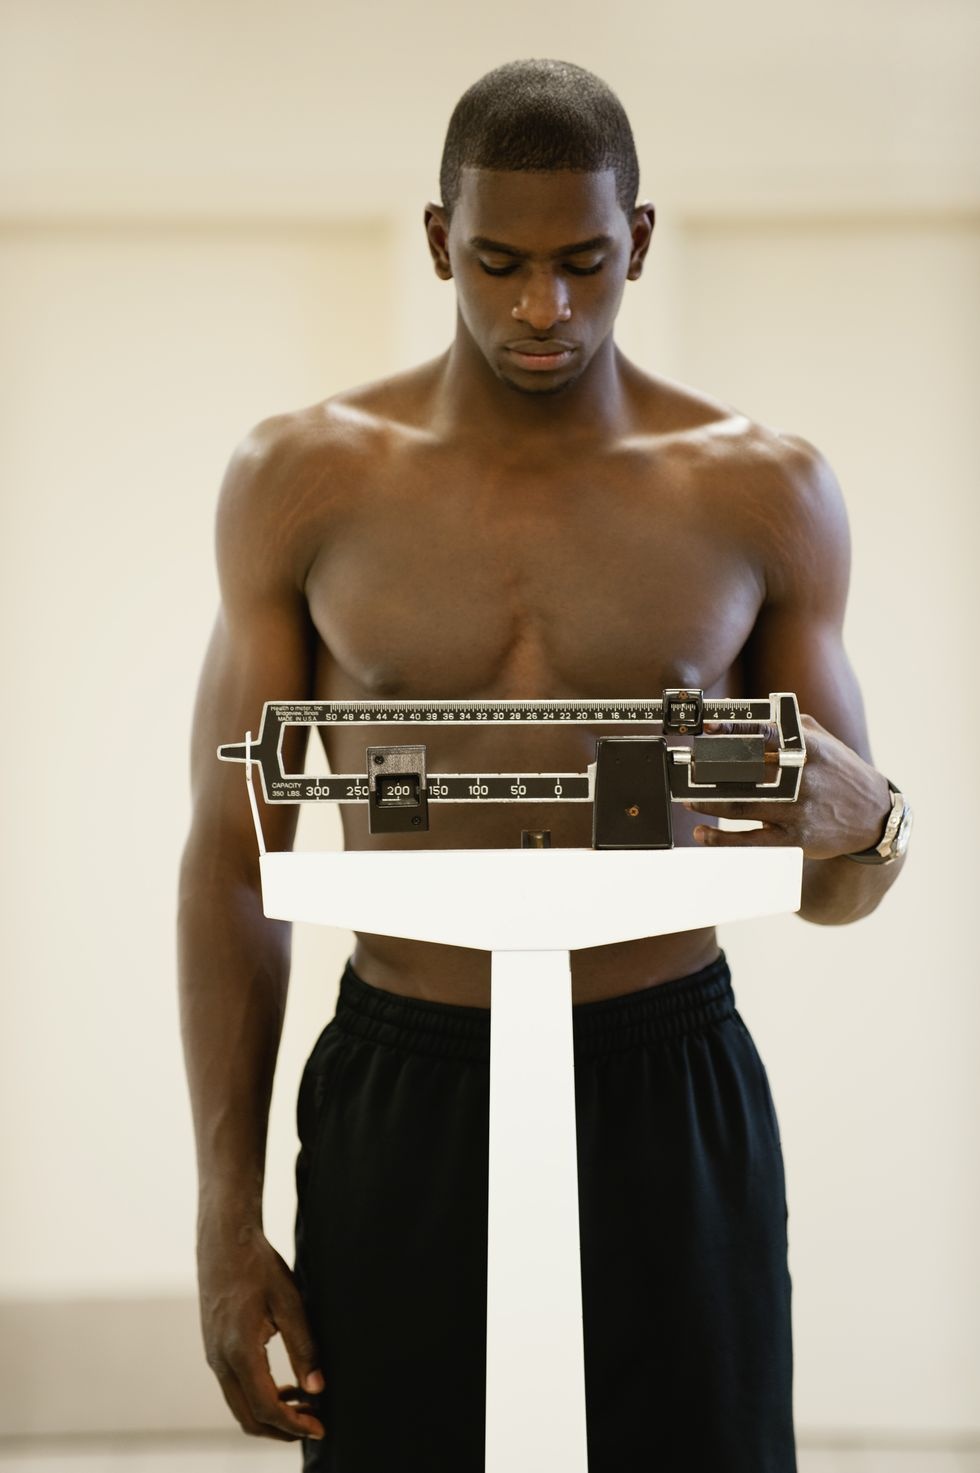 <p>The 30 Best Ways to Lose Weight and Get Rid of Your Belly thumbnail